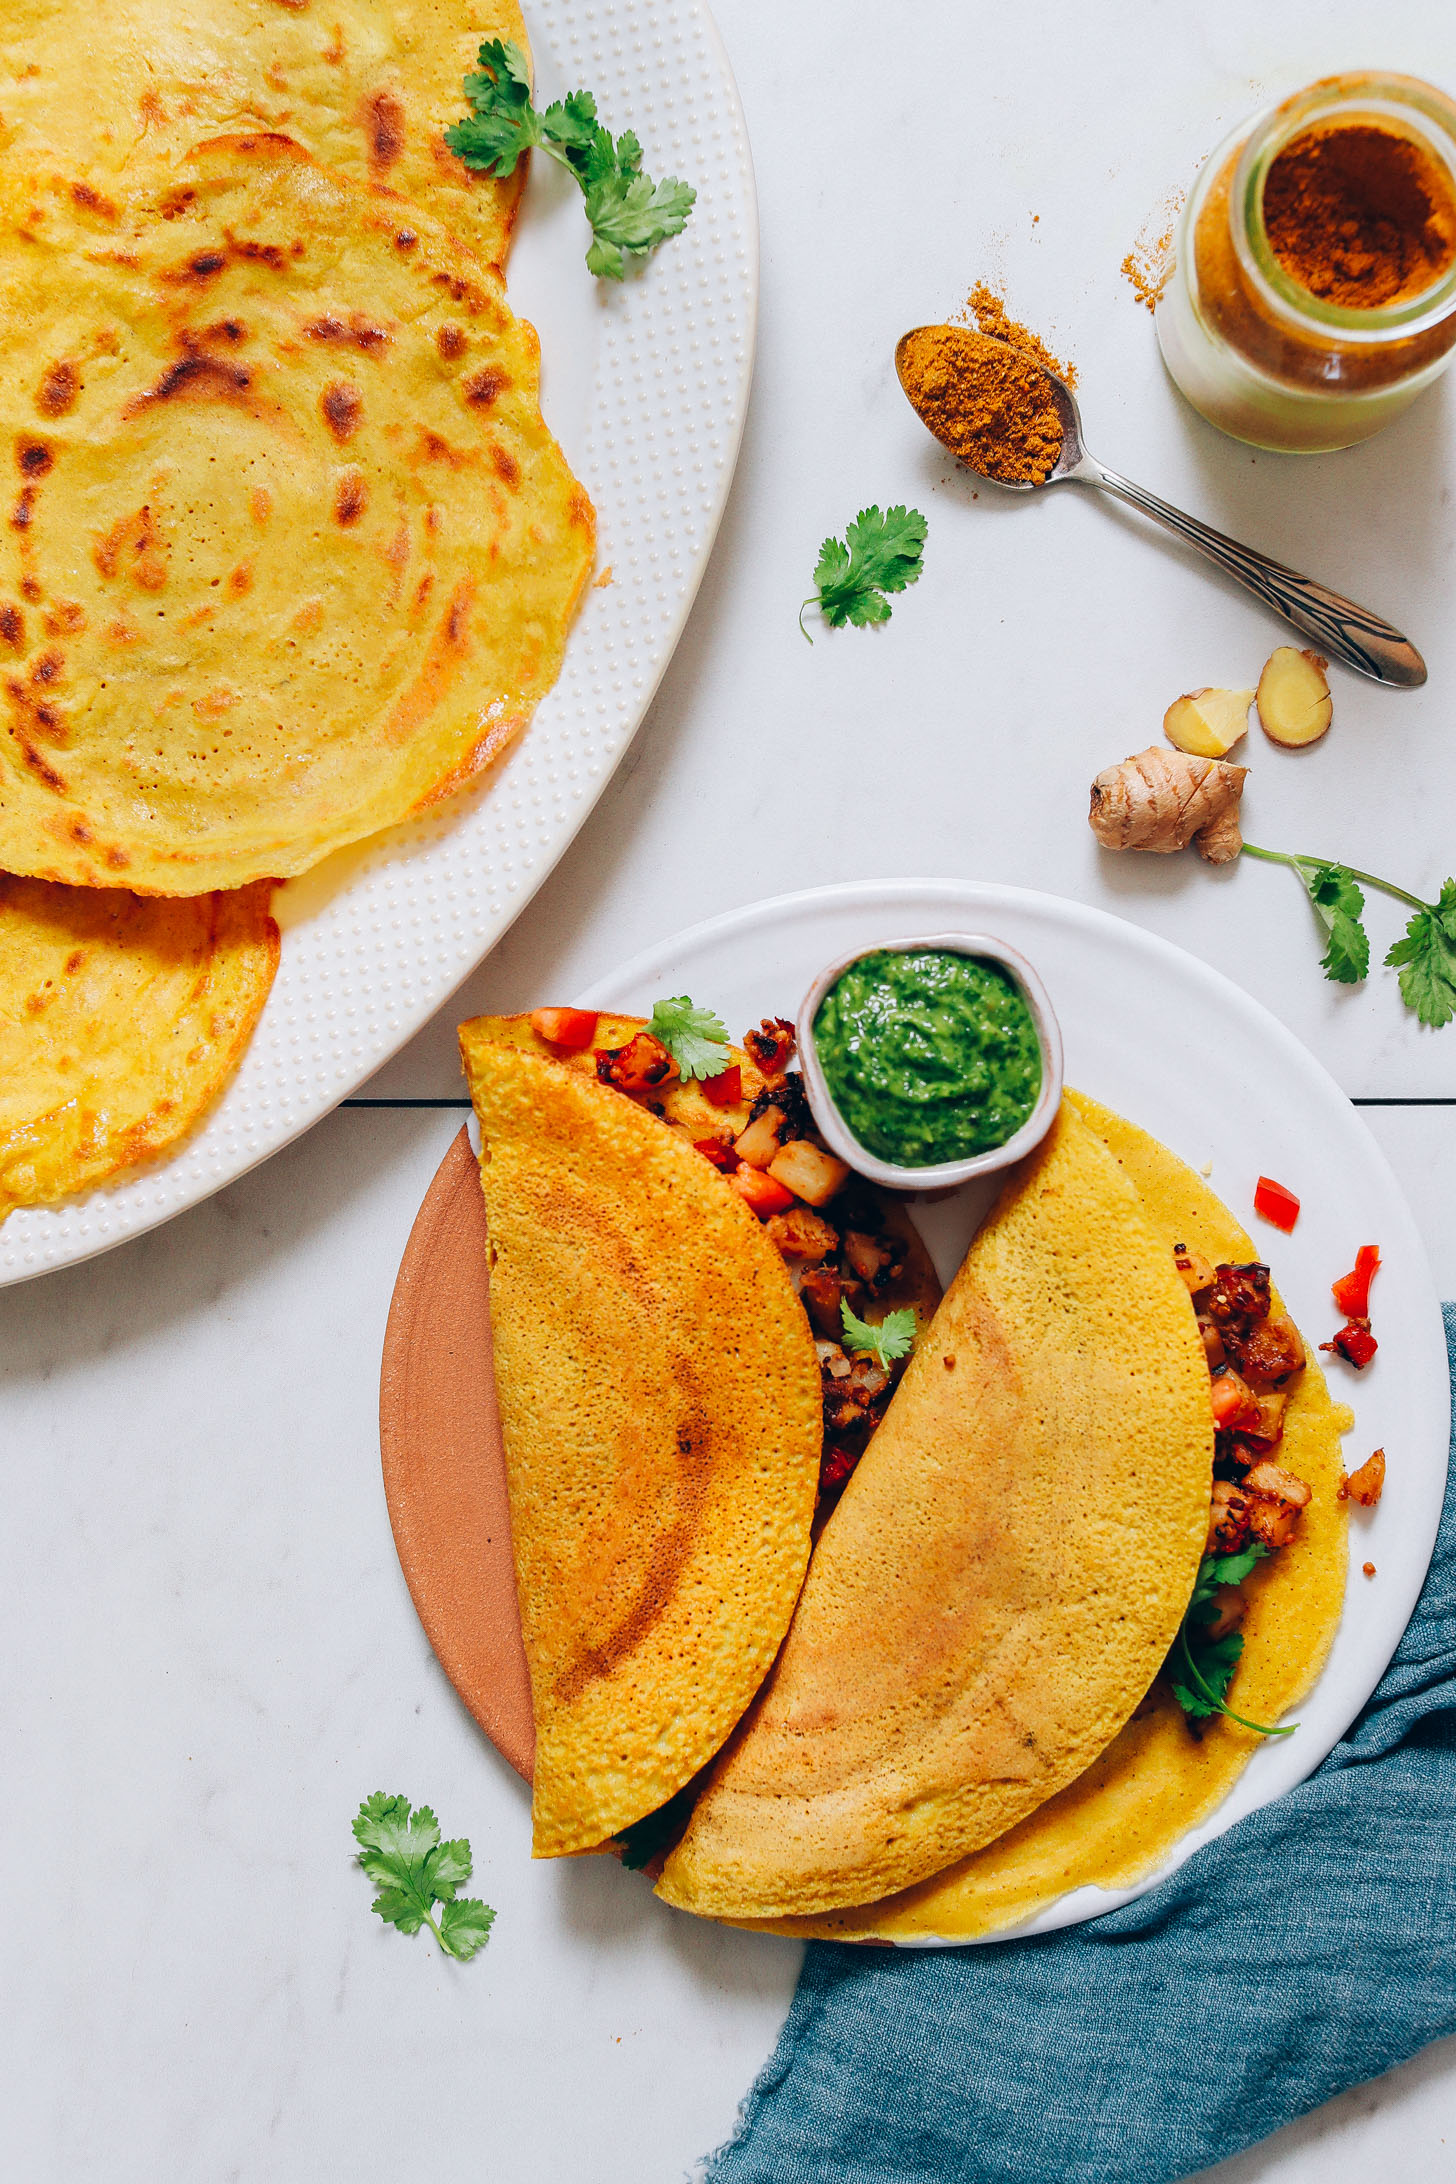 Platter and plate of moong dal dosas